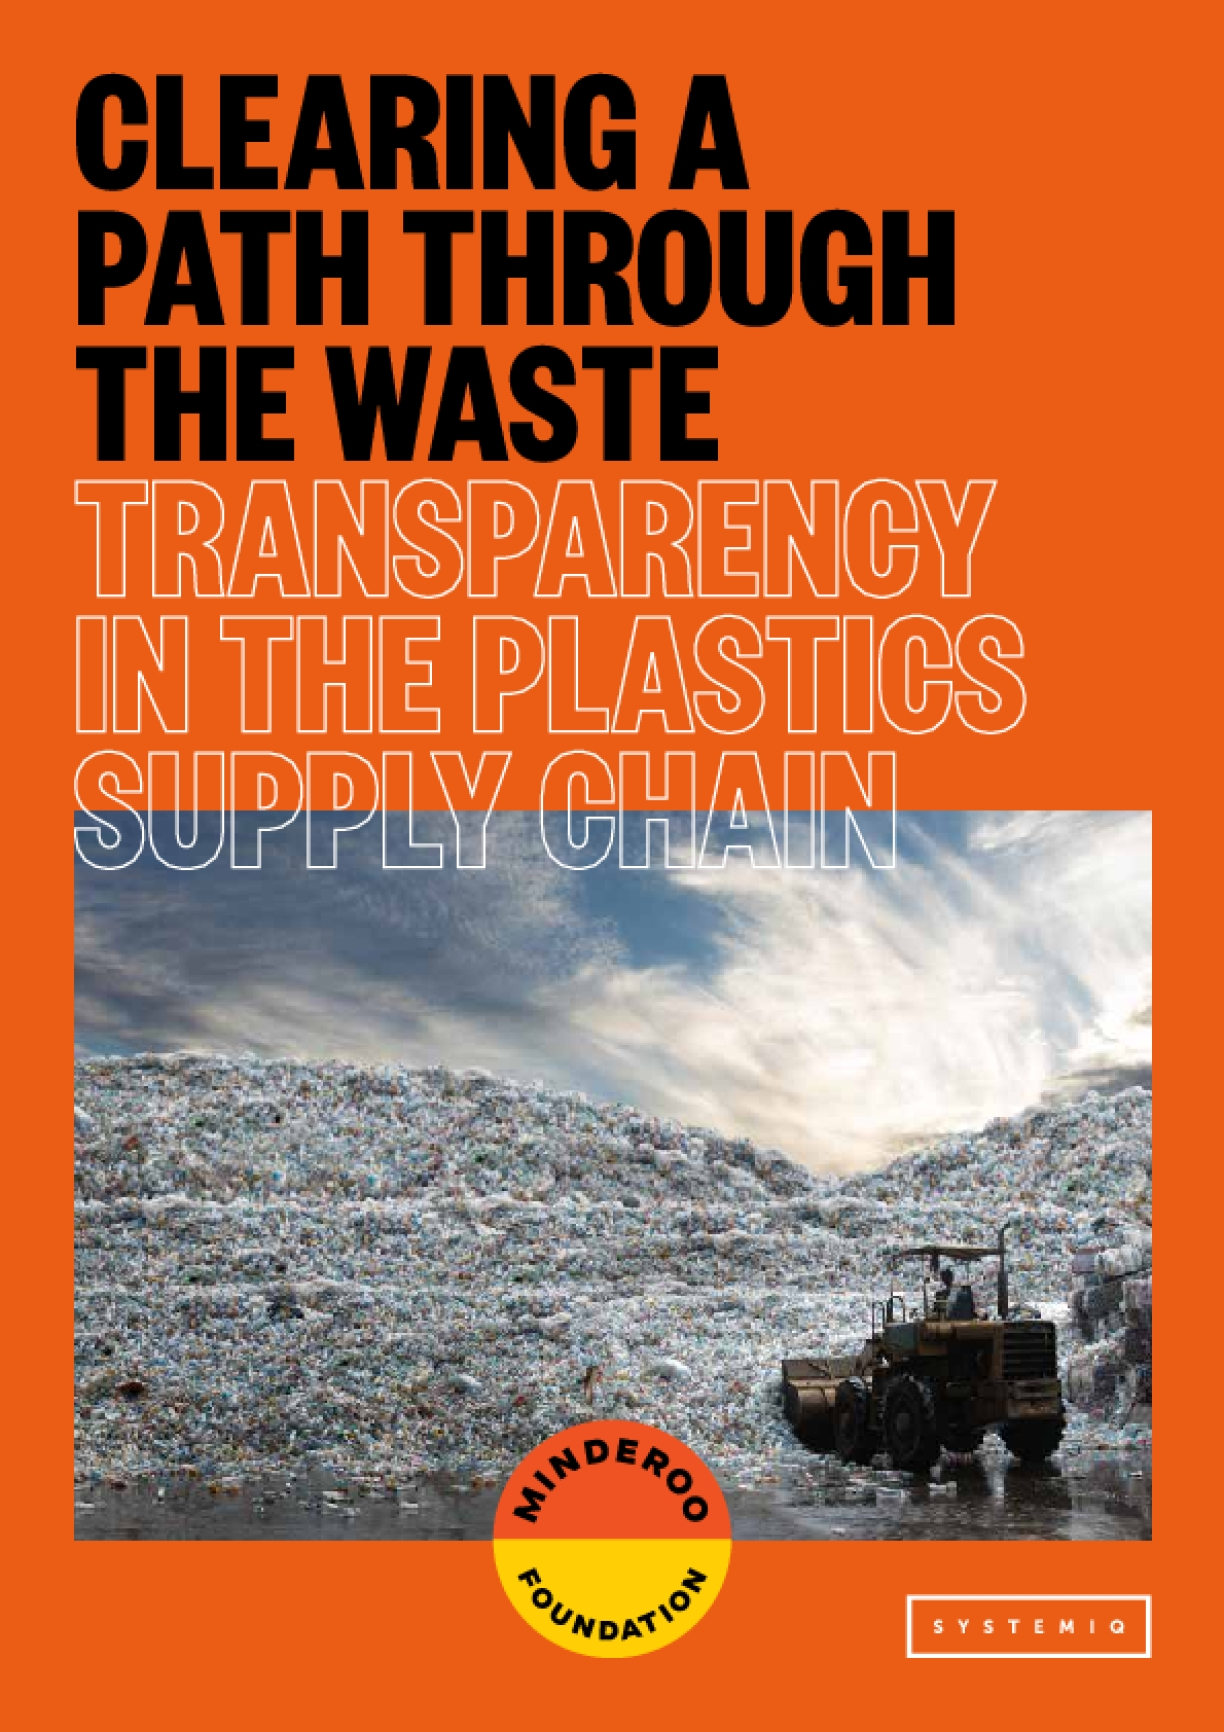 Clearing A Path Through The Waste: Transparency In The Plastics Supply Chain